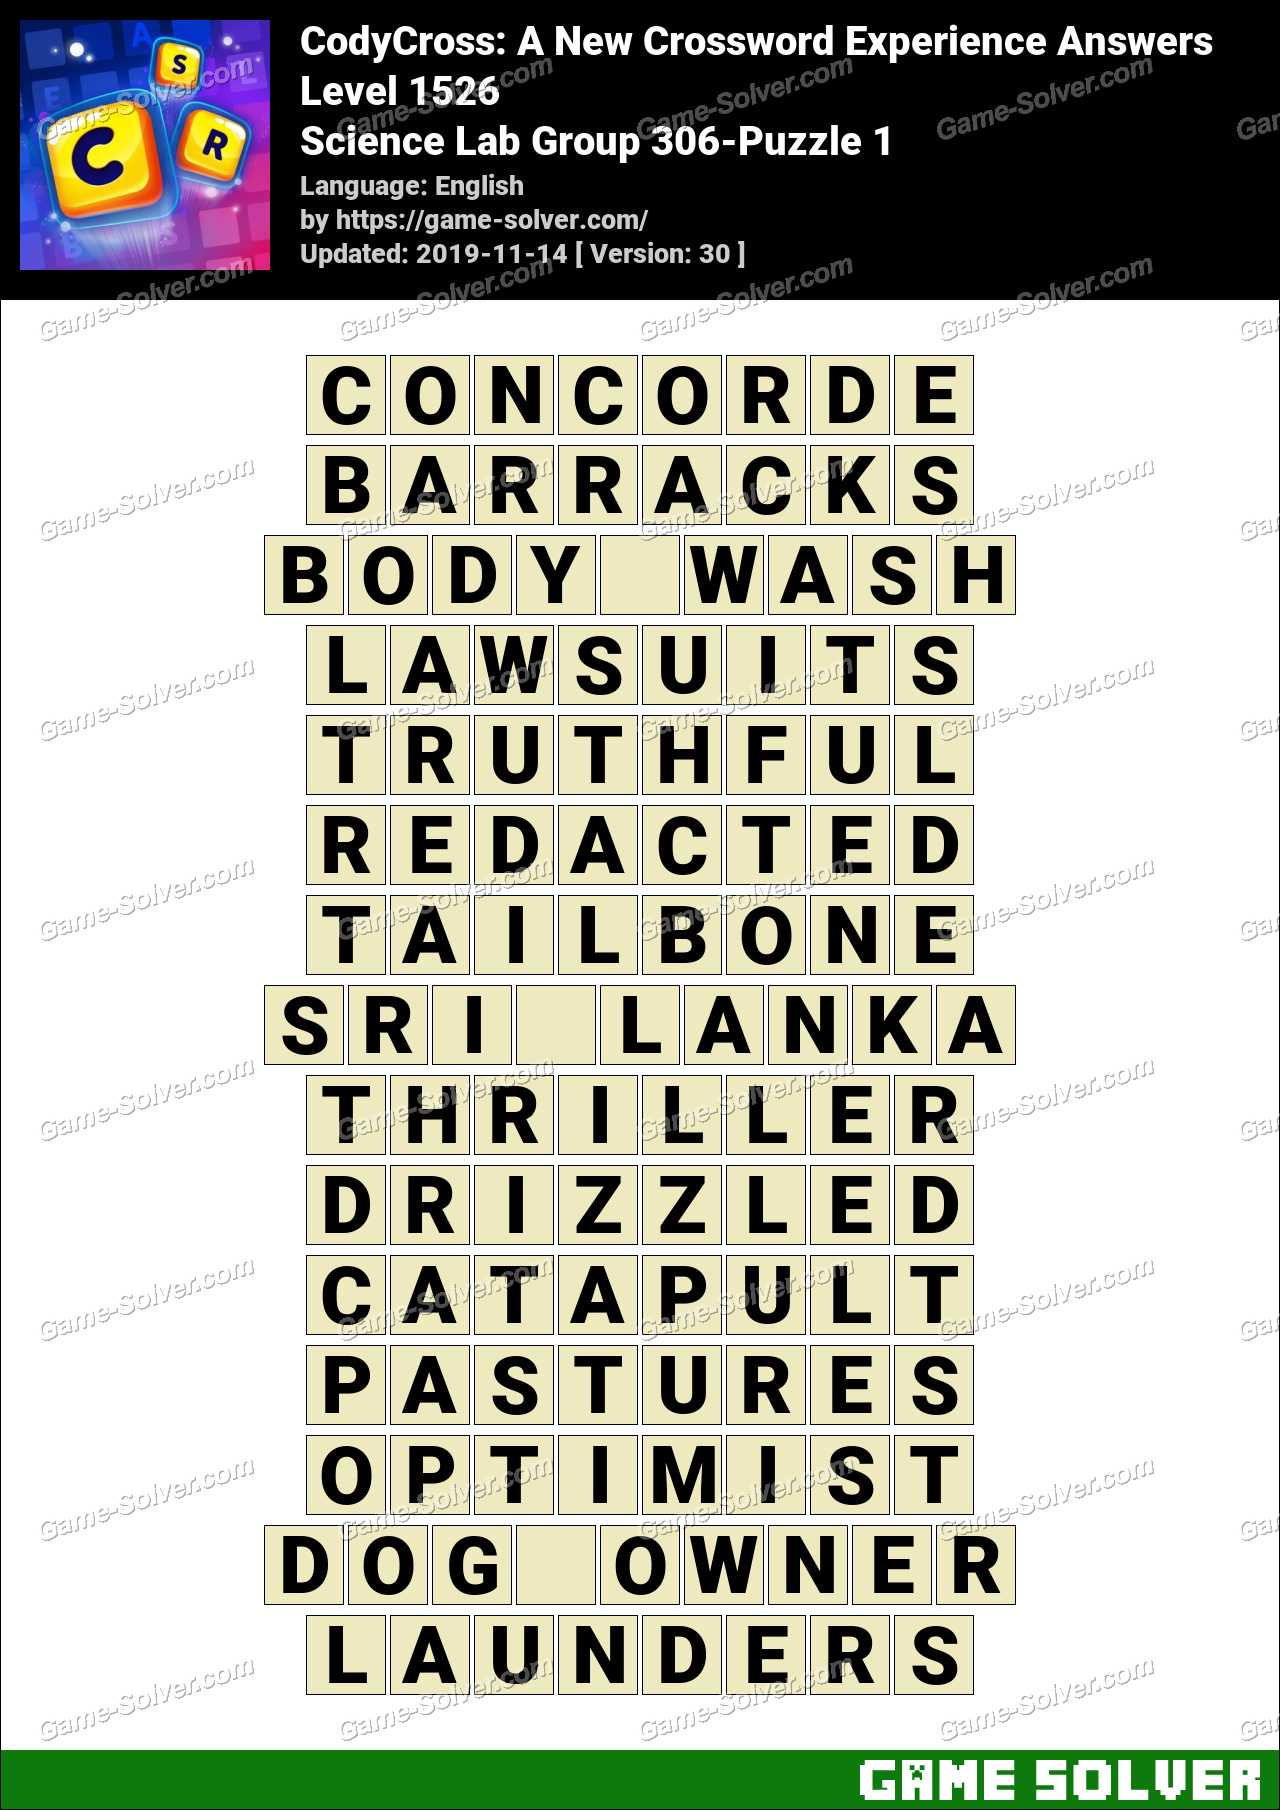 CodyCross Science Lab Group 306-Puzzle 1 Answers